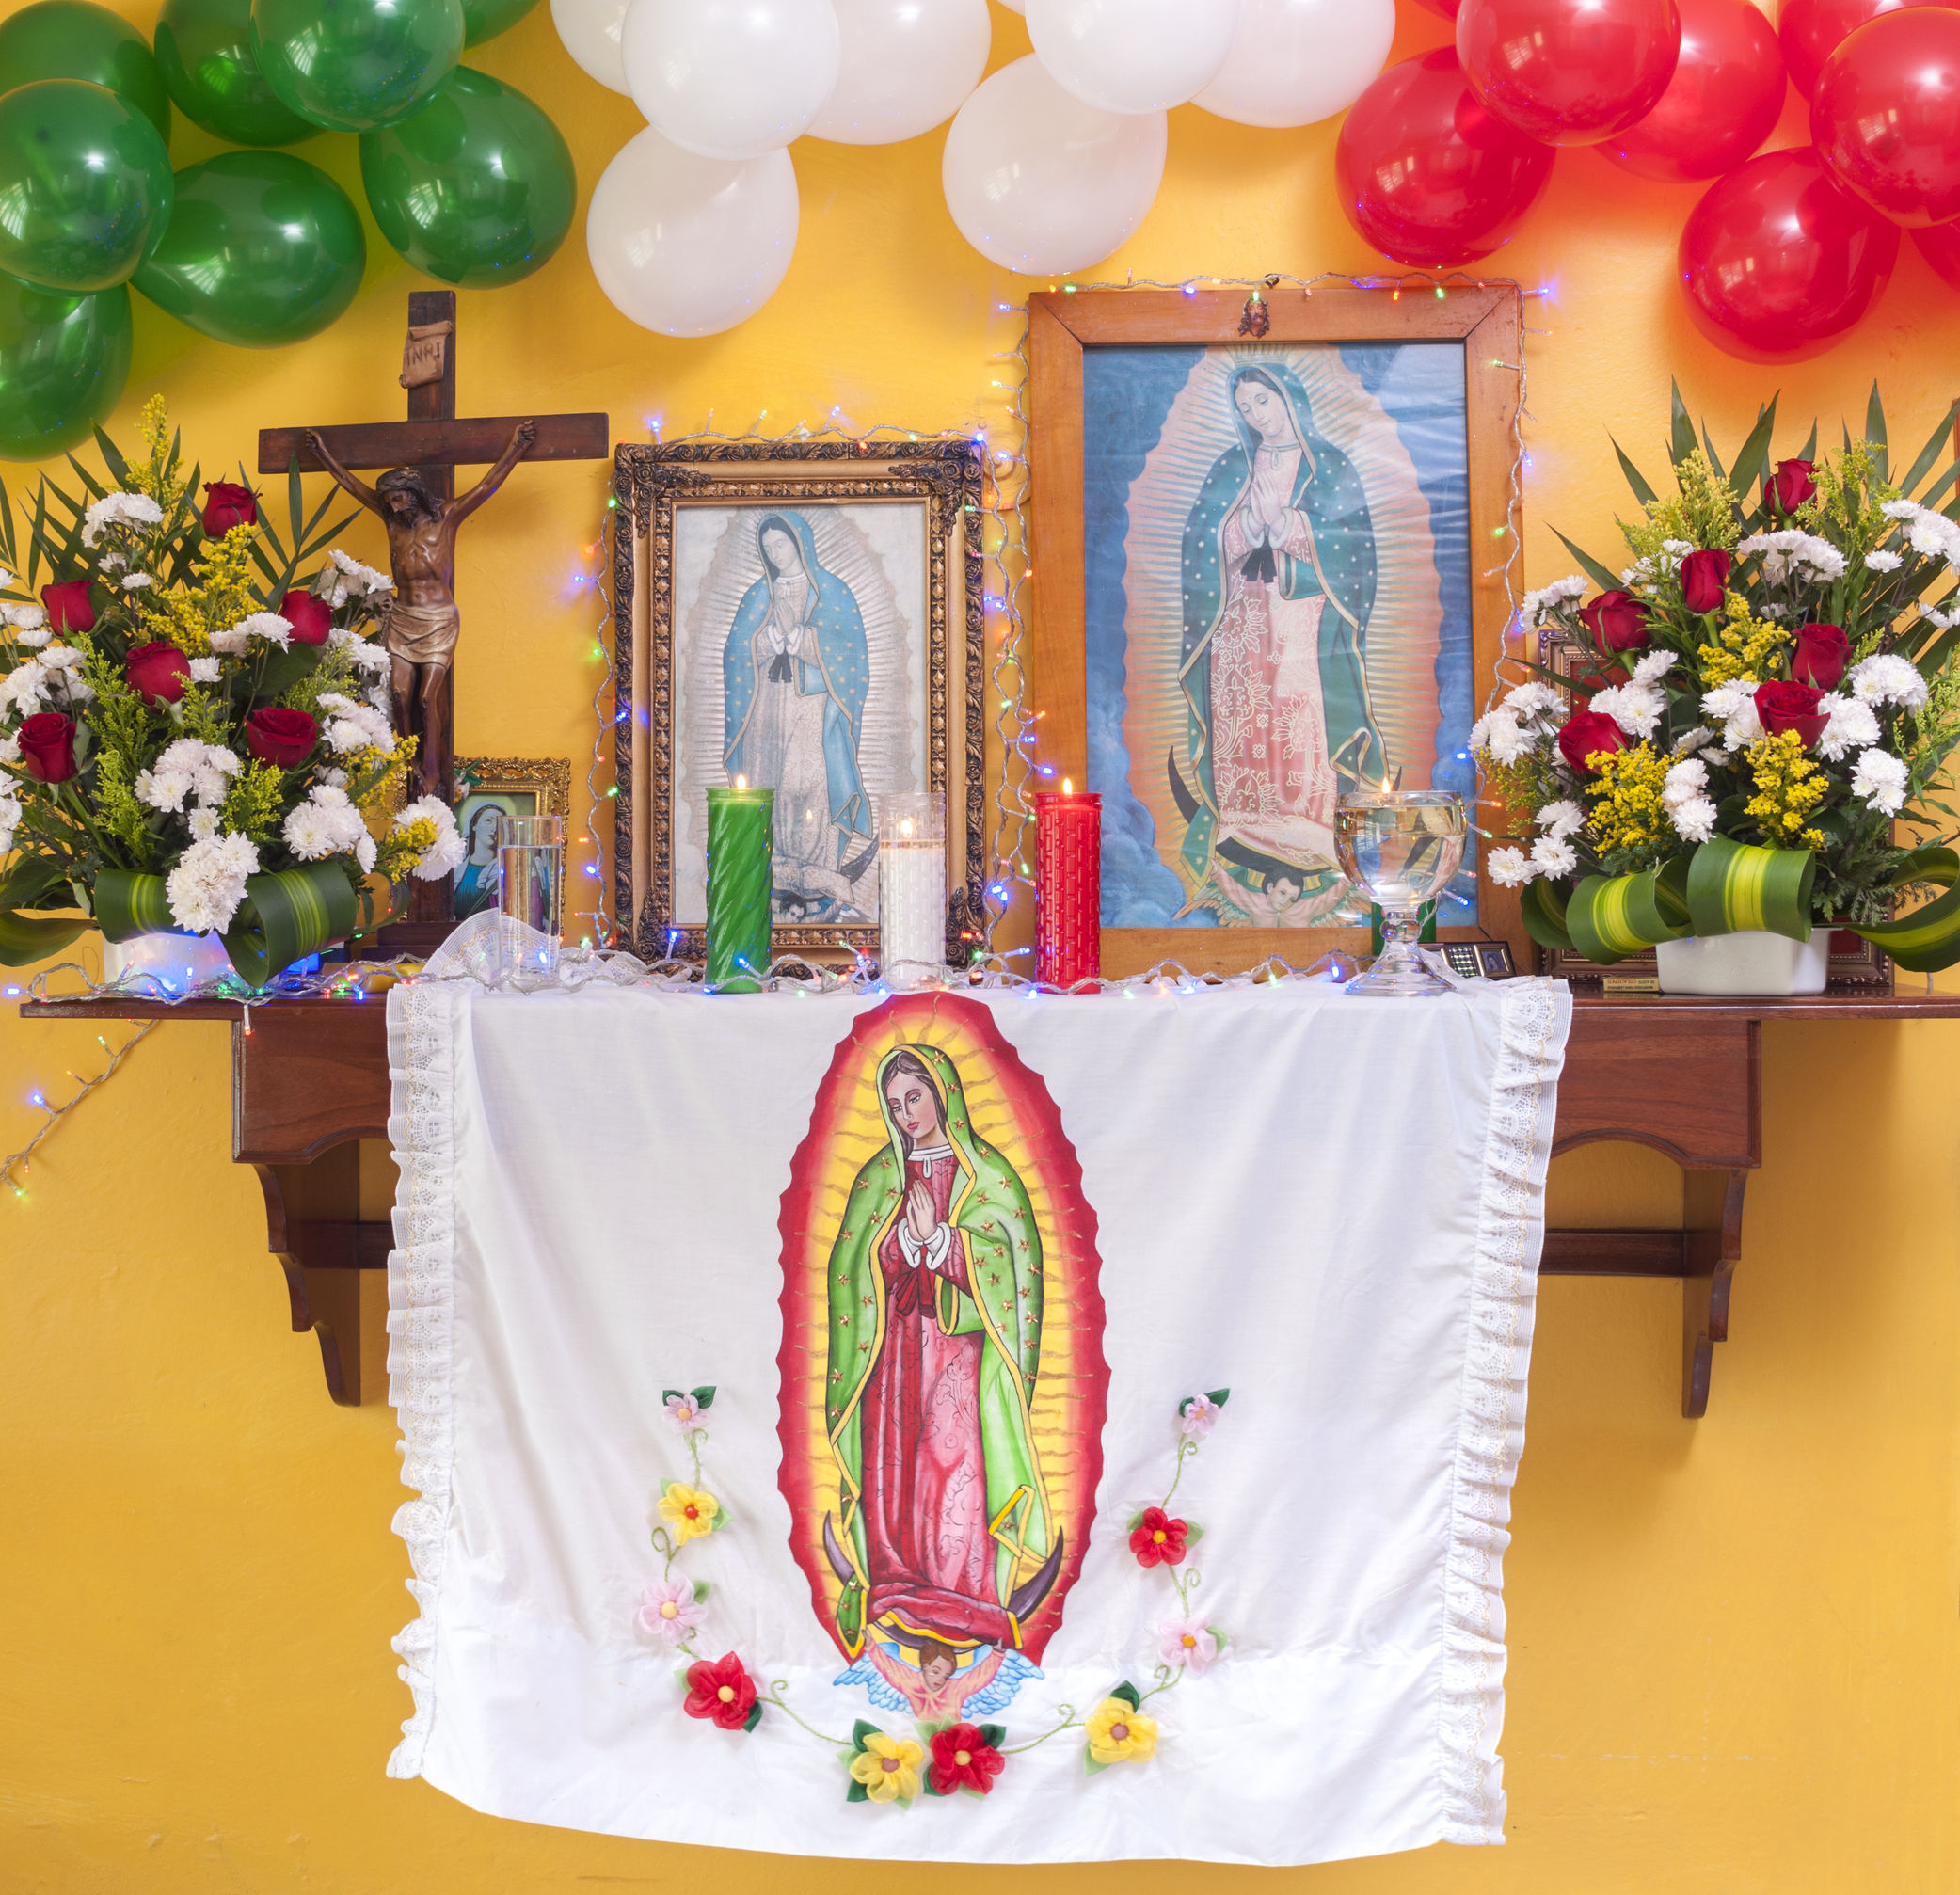 An altar for Our Lady of Guadalupe with pictures, candles, flowers